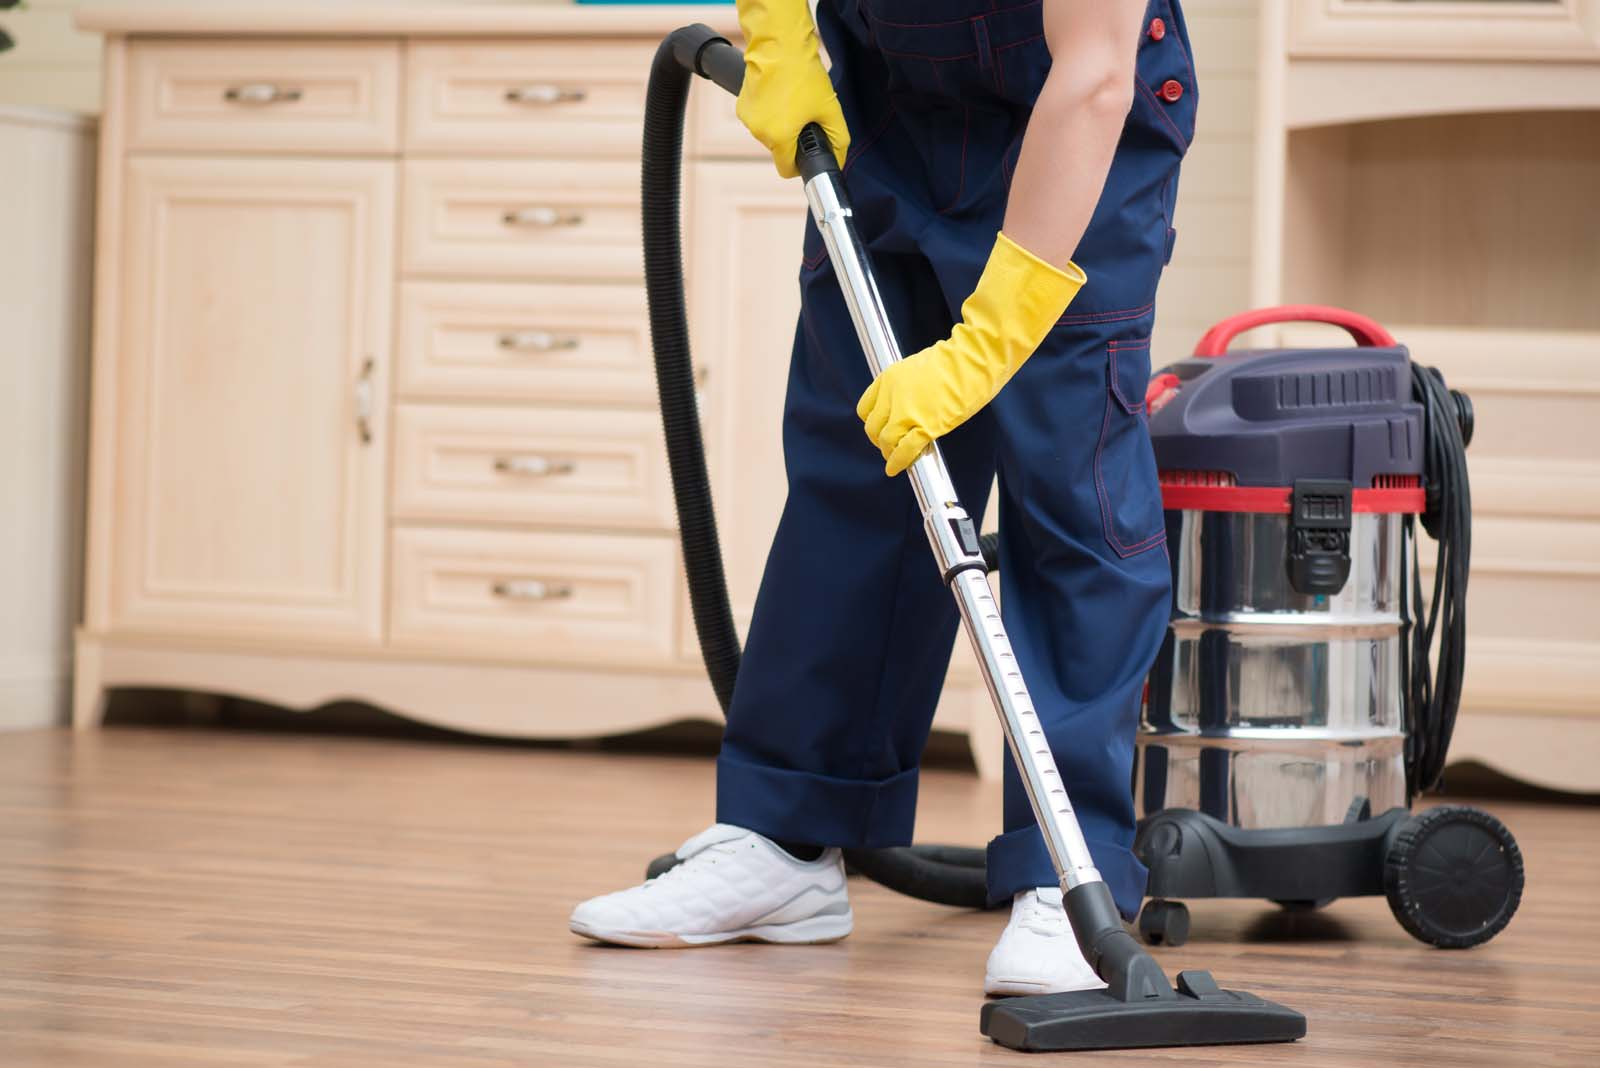 Why you should hire a Taskforce house cleaner